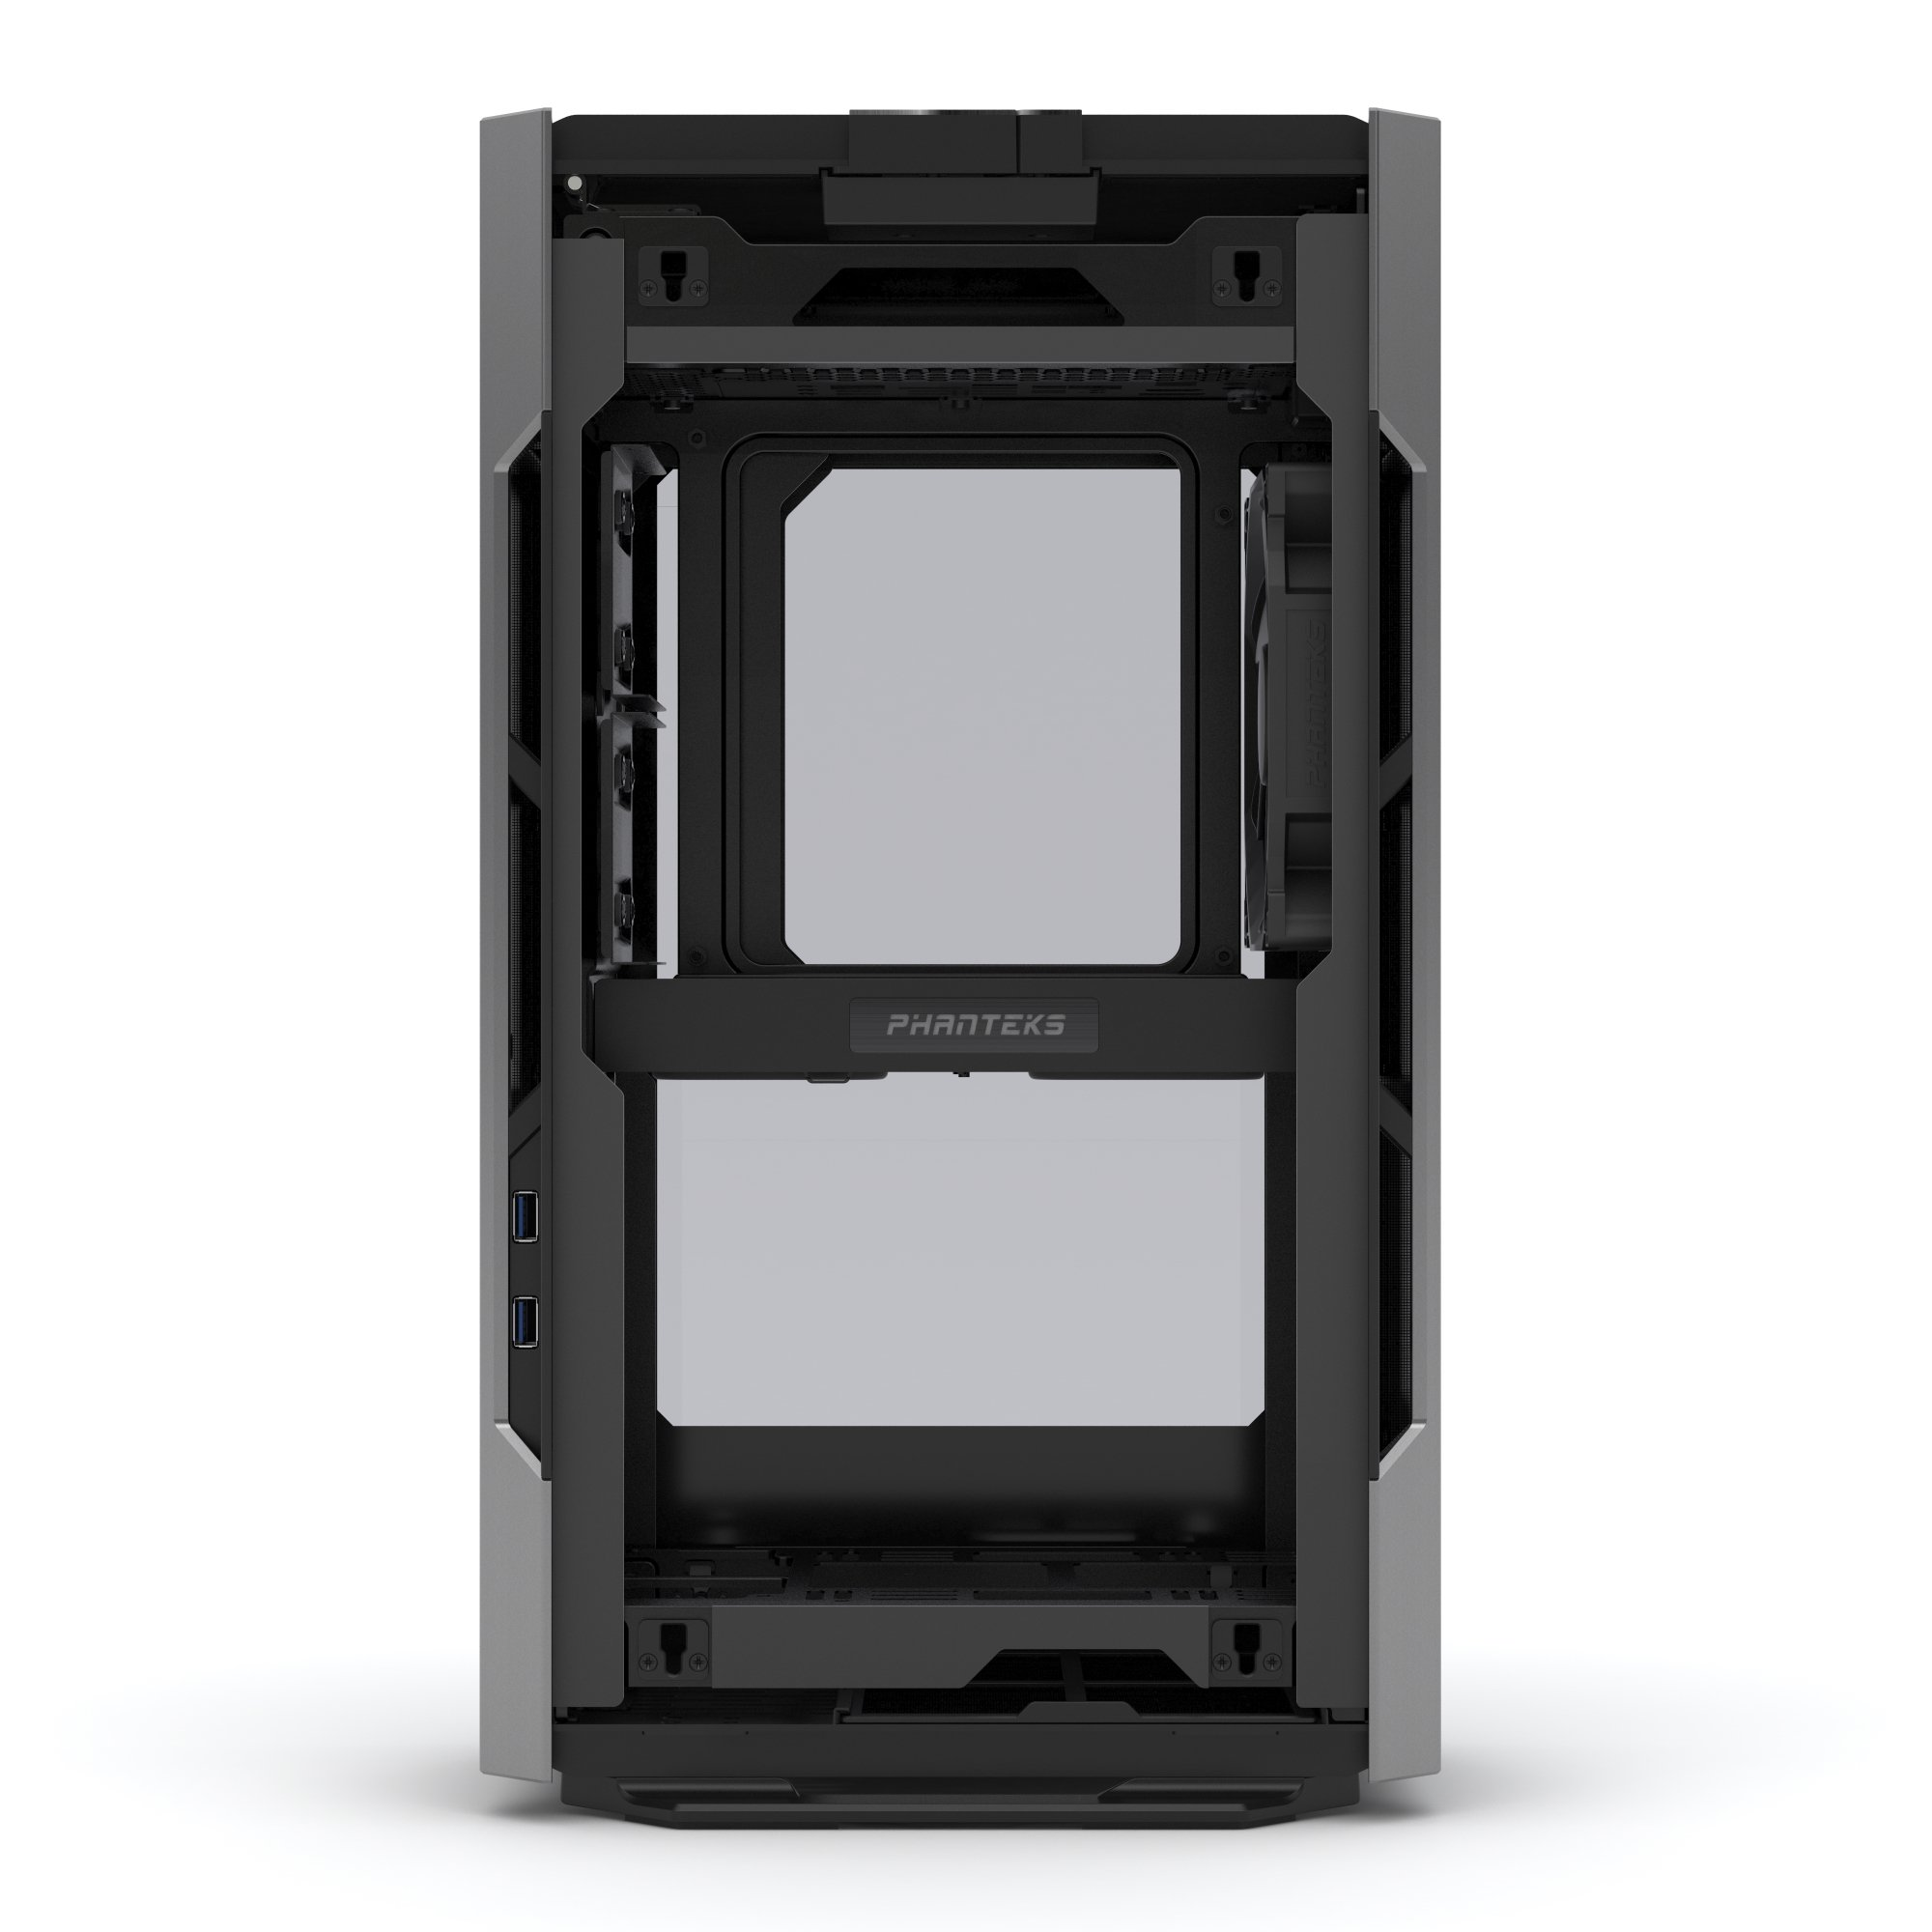 Phanteks PH-ES217E_AG EVOLV SHIFT Mini ITX Dual Tempered Glass for AIO water cooling Anthracite Gray Cases by Phanteks (Image #6)